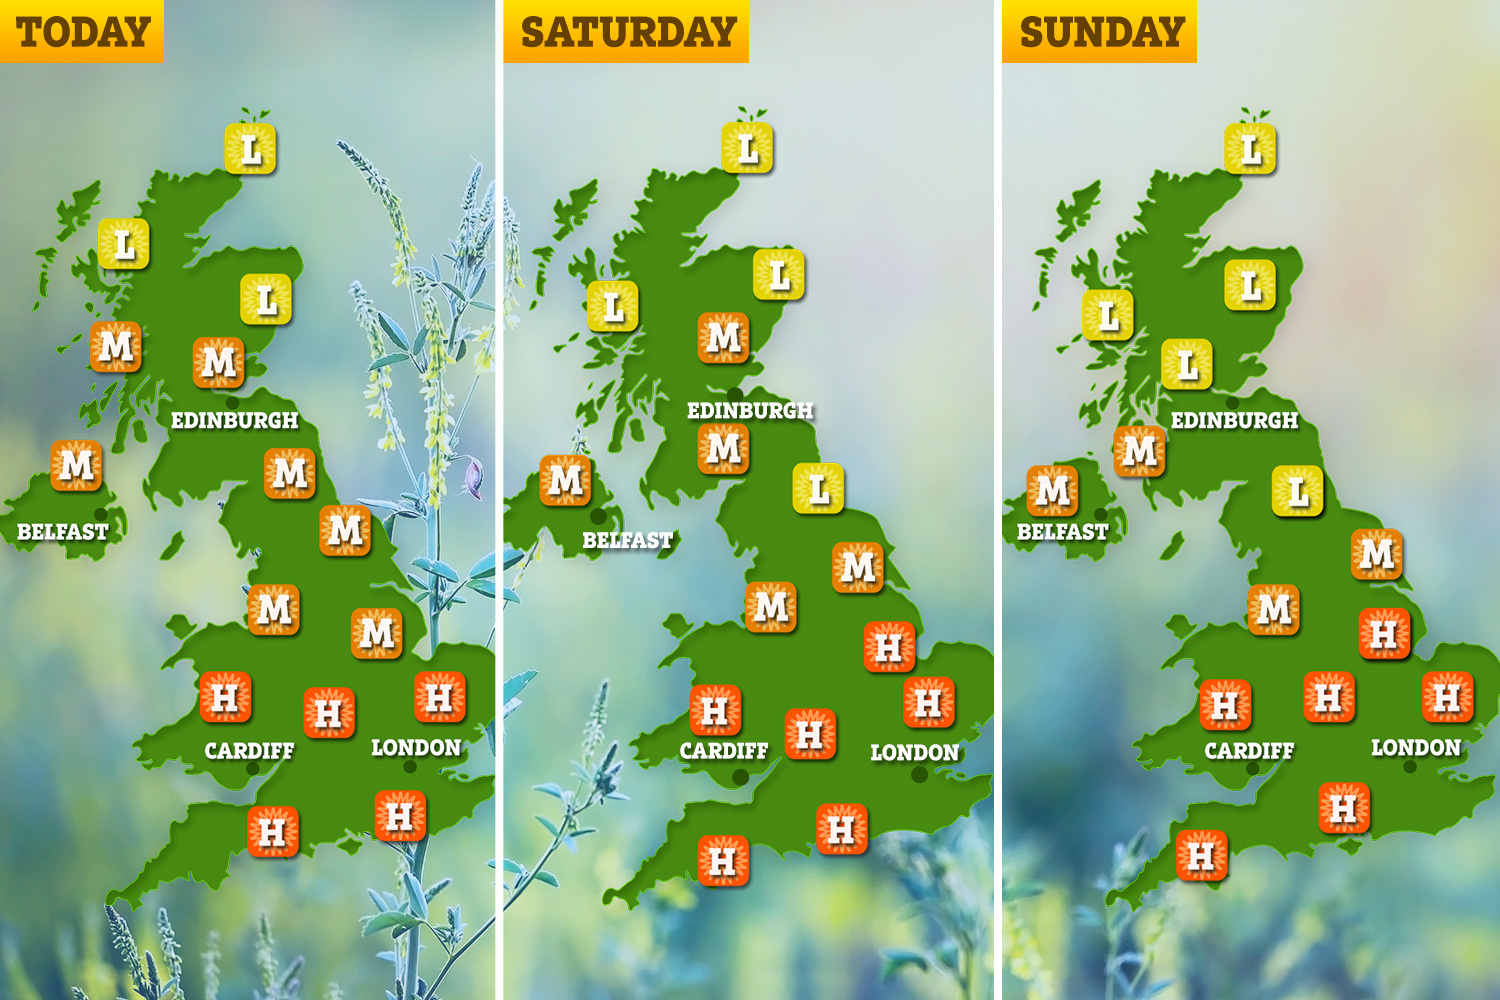 The Met Office has warned of high grass pollen levels across the south of England and Midlands